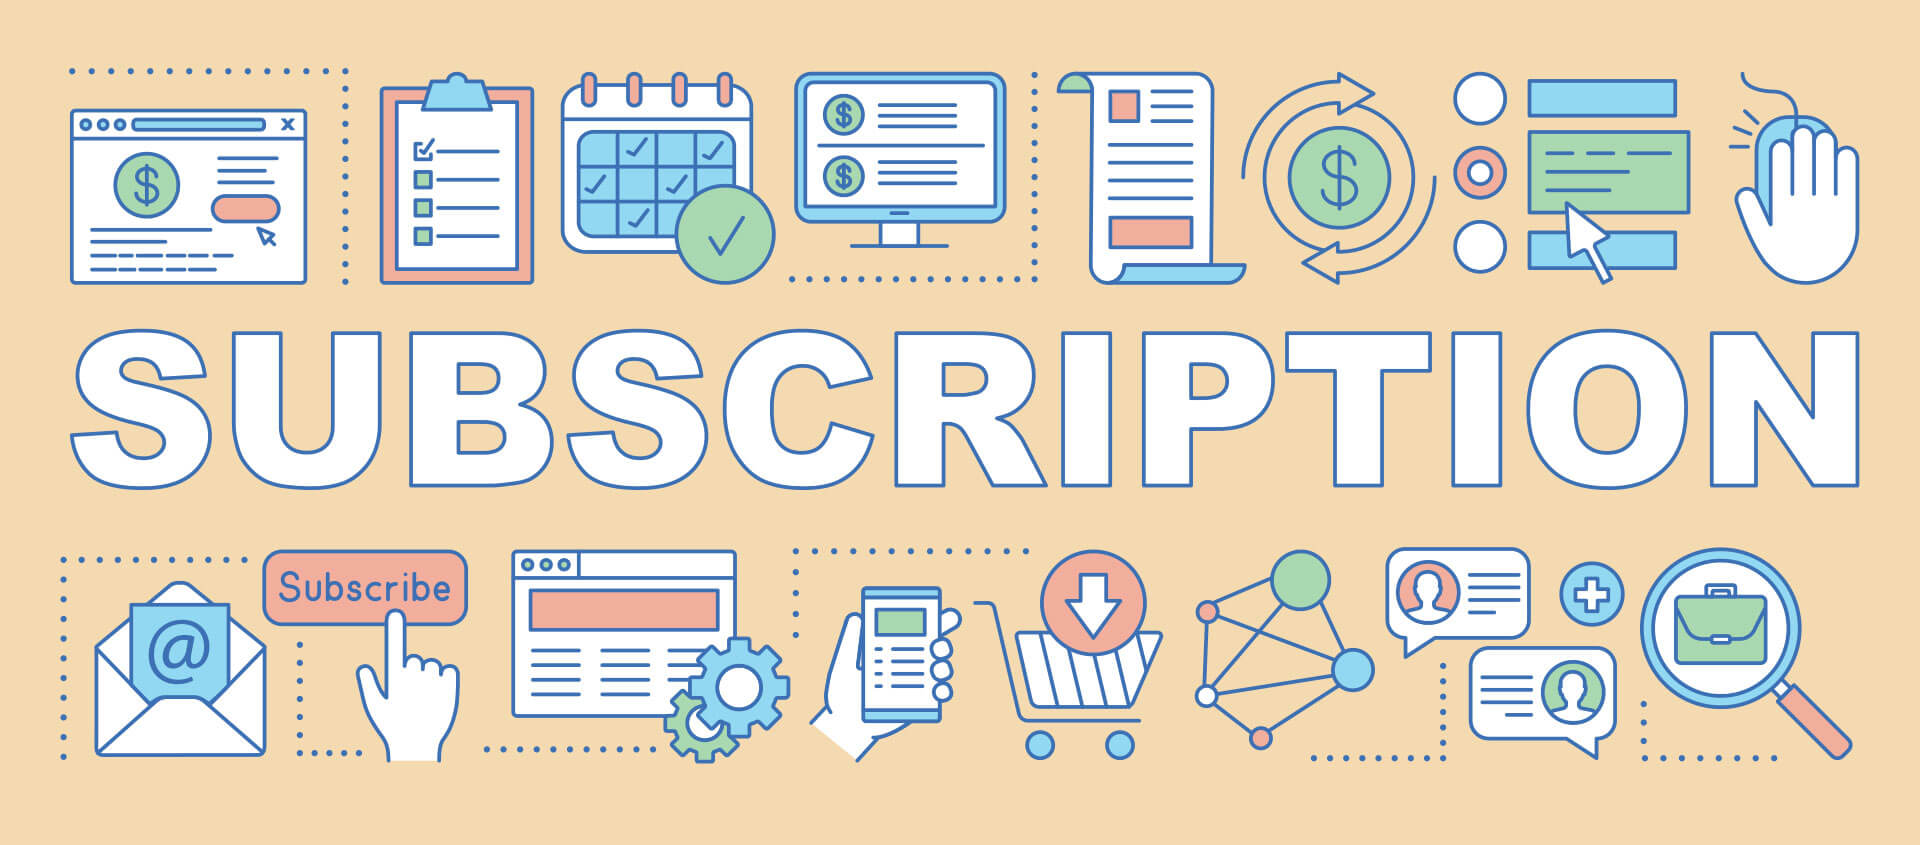 Subscription-business-model